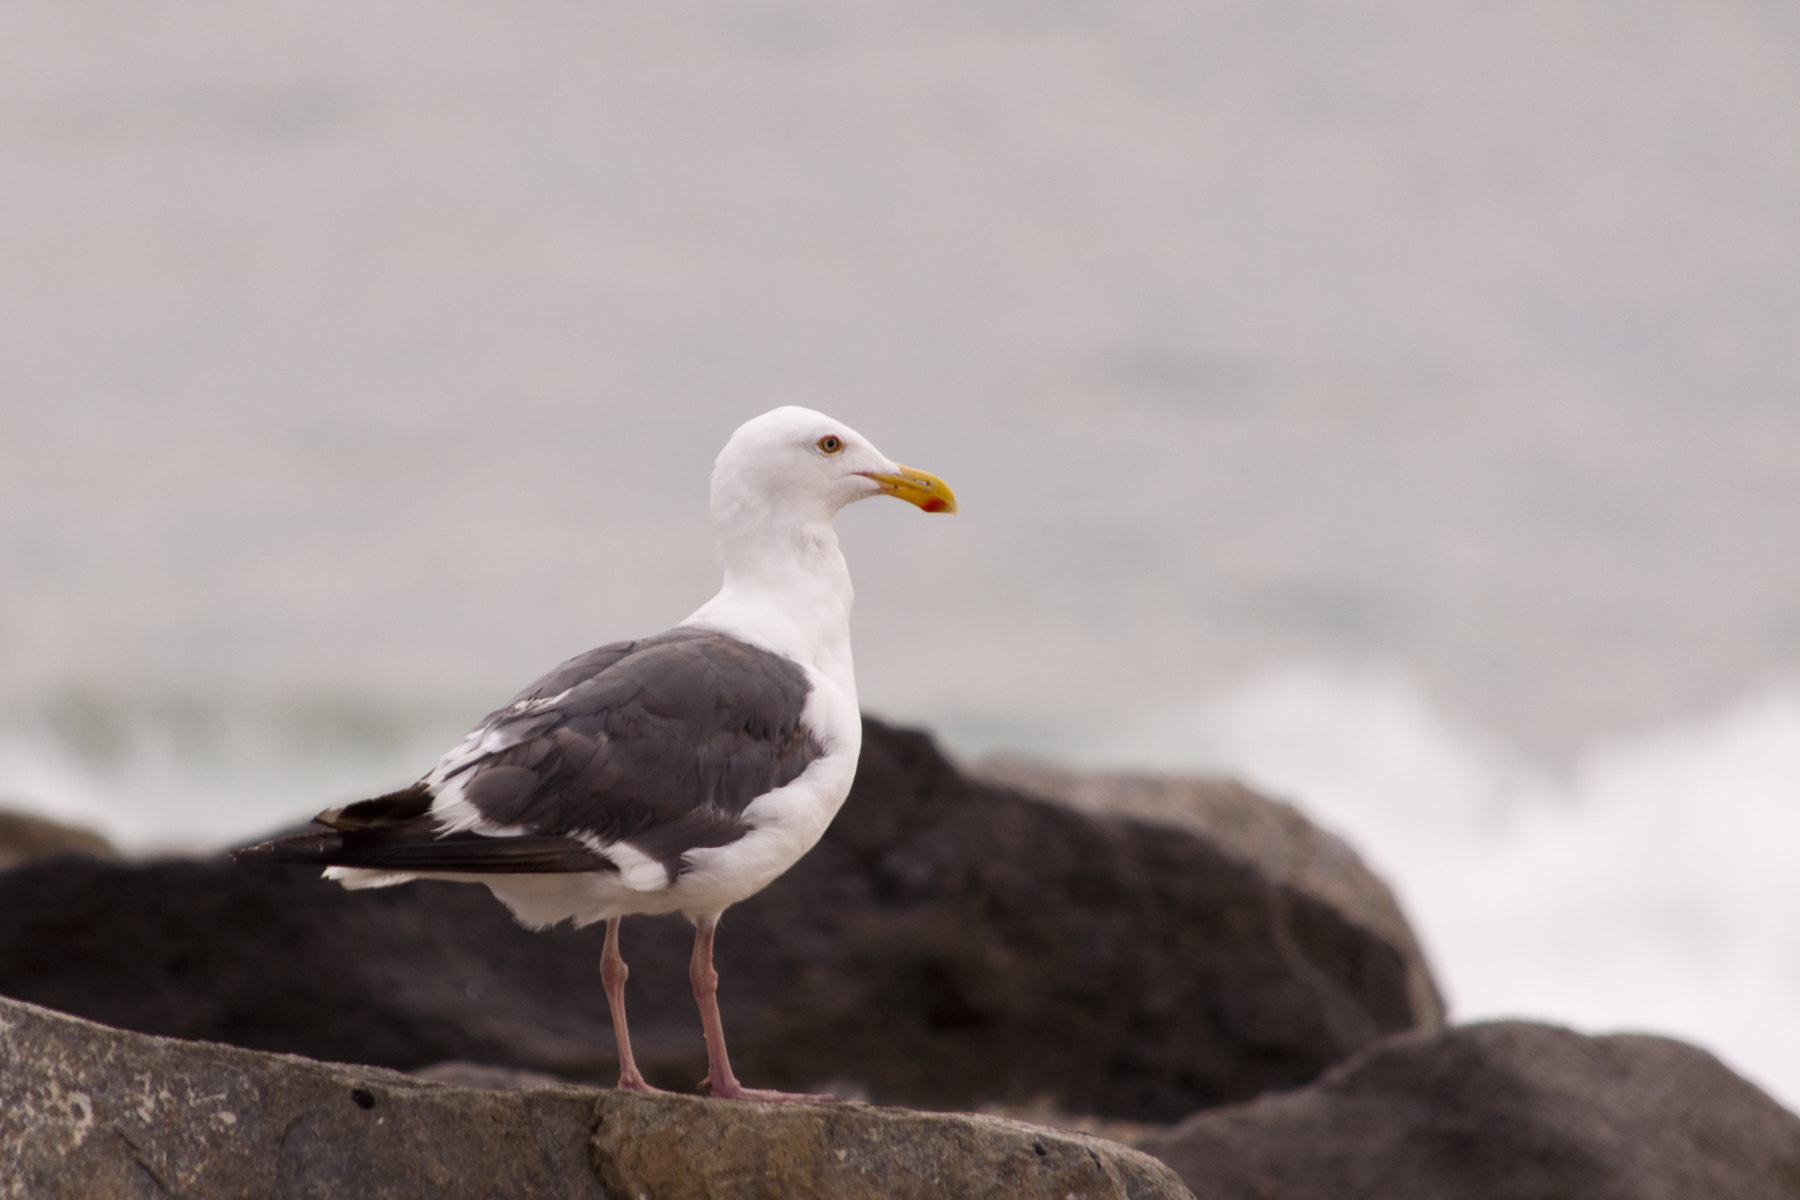 Photograph Seagull by Chris Hogan on 500px